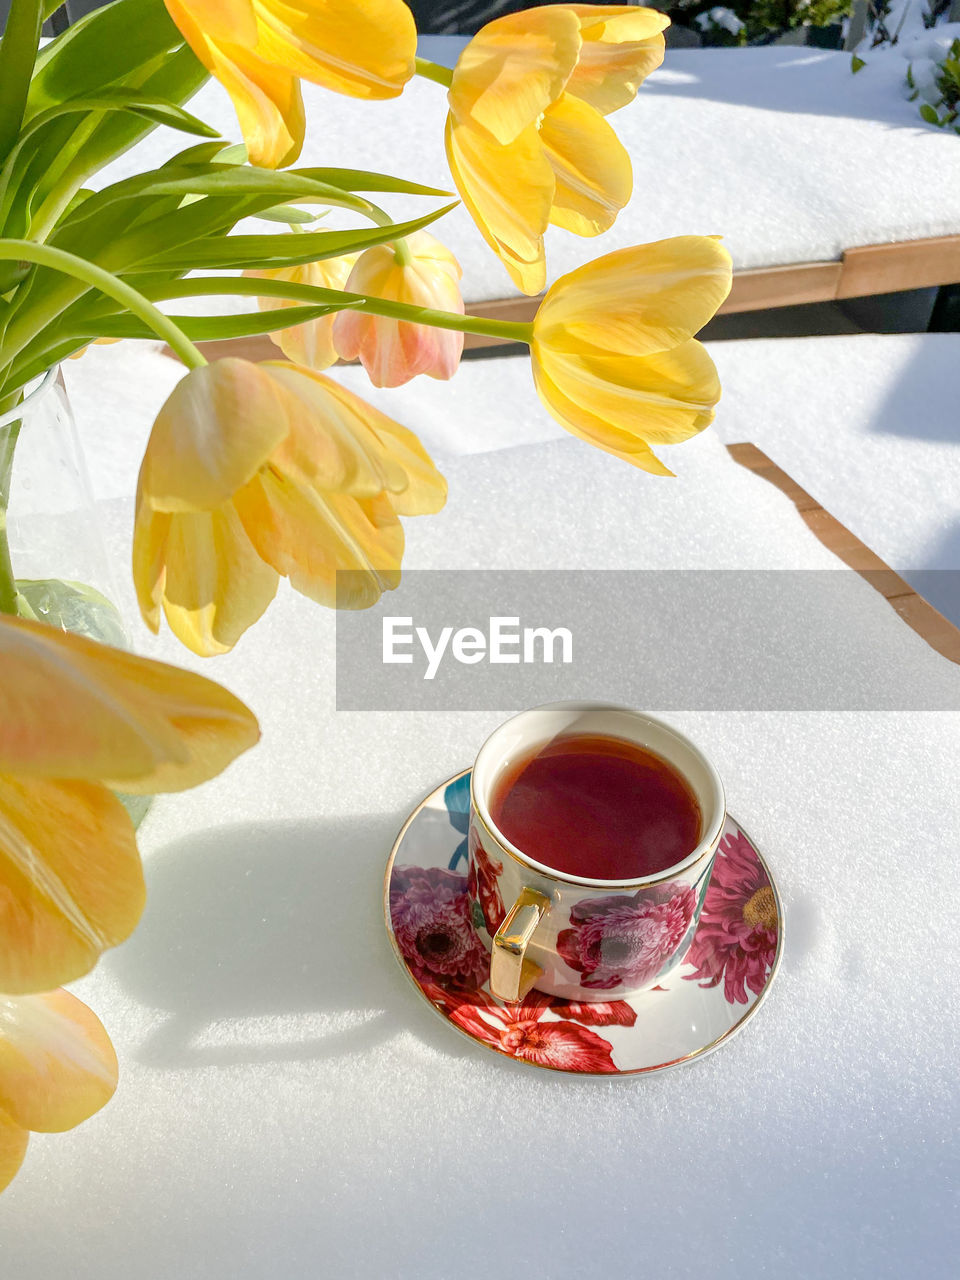 HIGH ANGLE VIEW OF TEA SERVED ON TABLE IN VASE